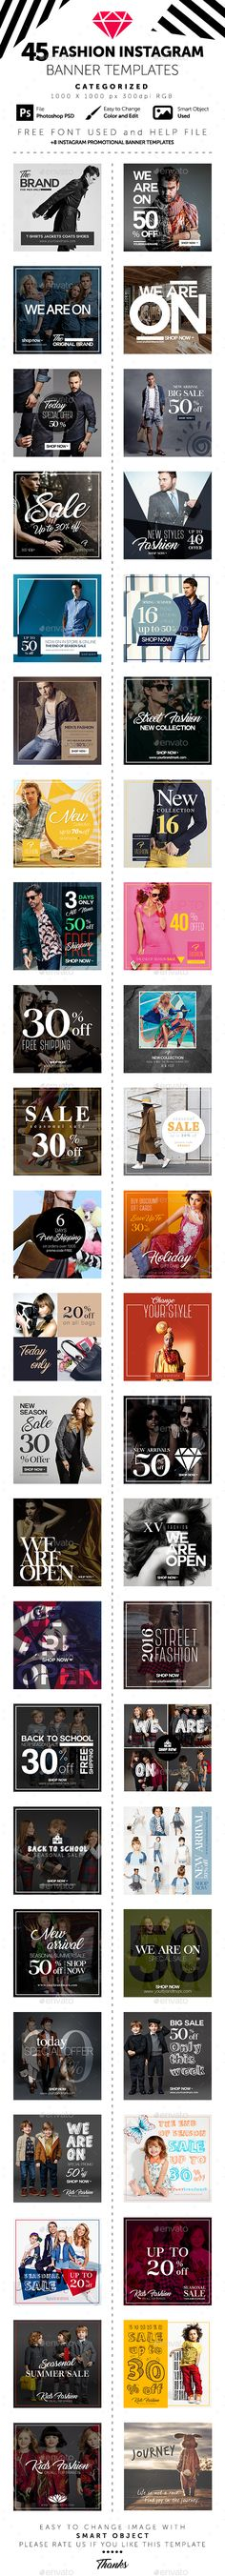 Instagram Banner Templates - Social Media Web Elements